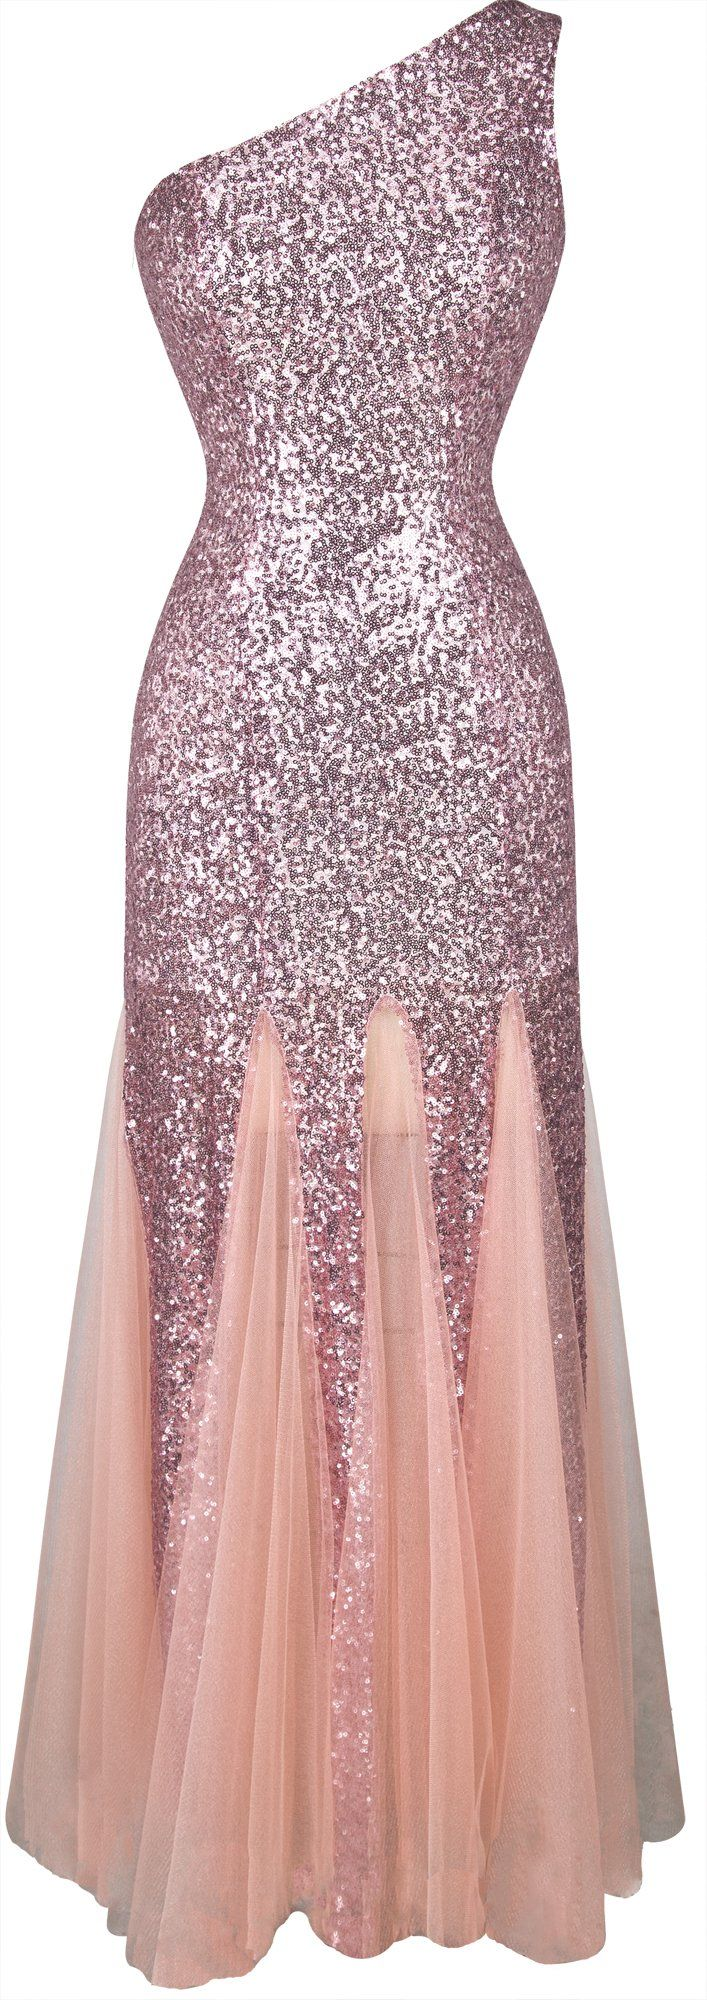 Angel-fashions Women's One Shoulder Twinkling Sequined Mesh Long Evening Dress Small